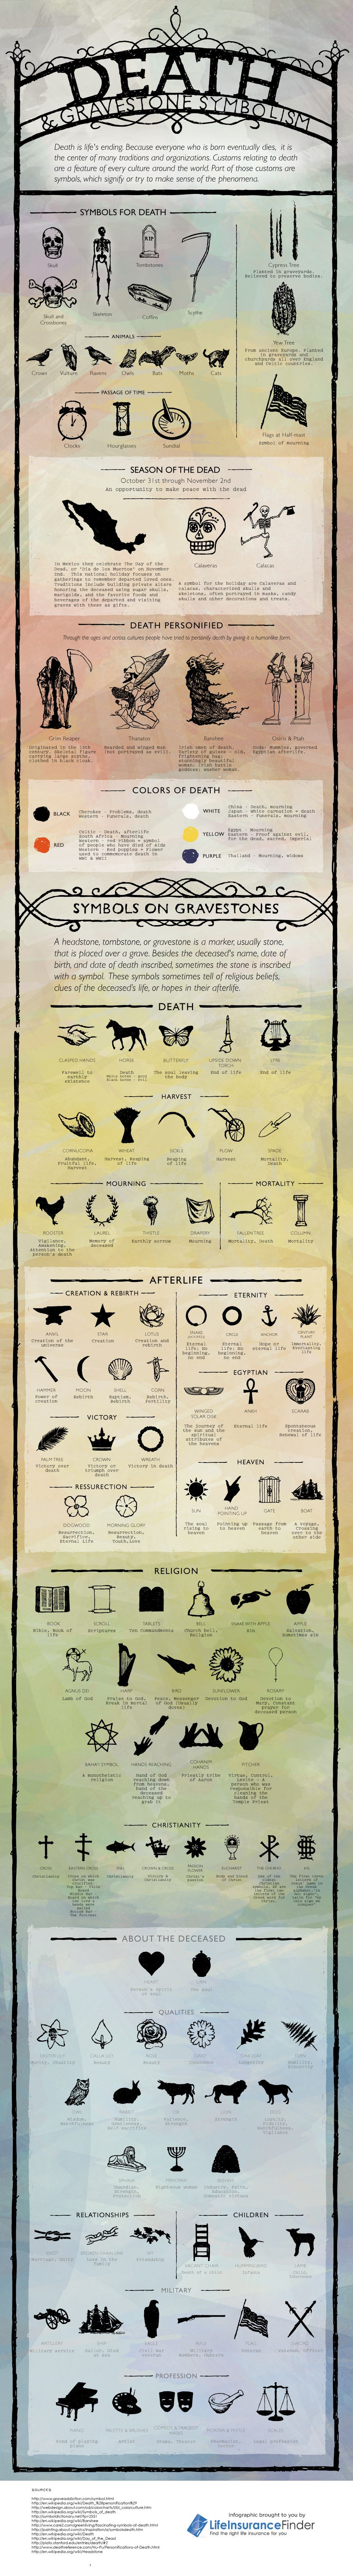 Symbolism Of Death Fascinating English Pinterest Death